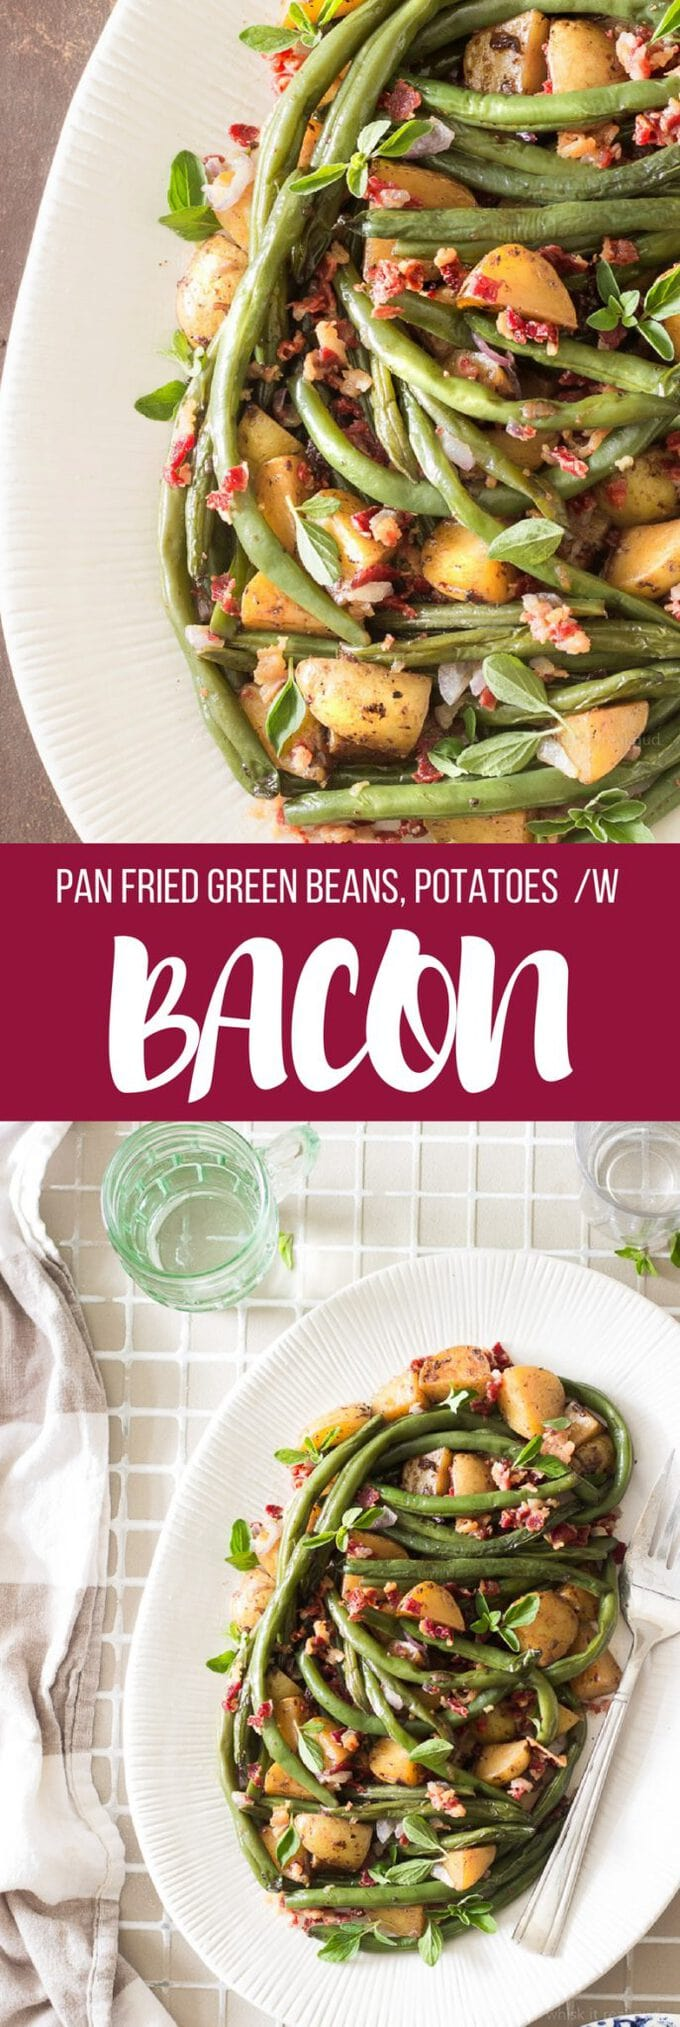 Fresh green beans cooked in a skillet with onions, potatoes and bacon.  So delicious, yet so simple to make. Perfect as a Thanksgiving side dish.